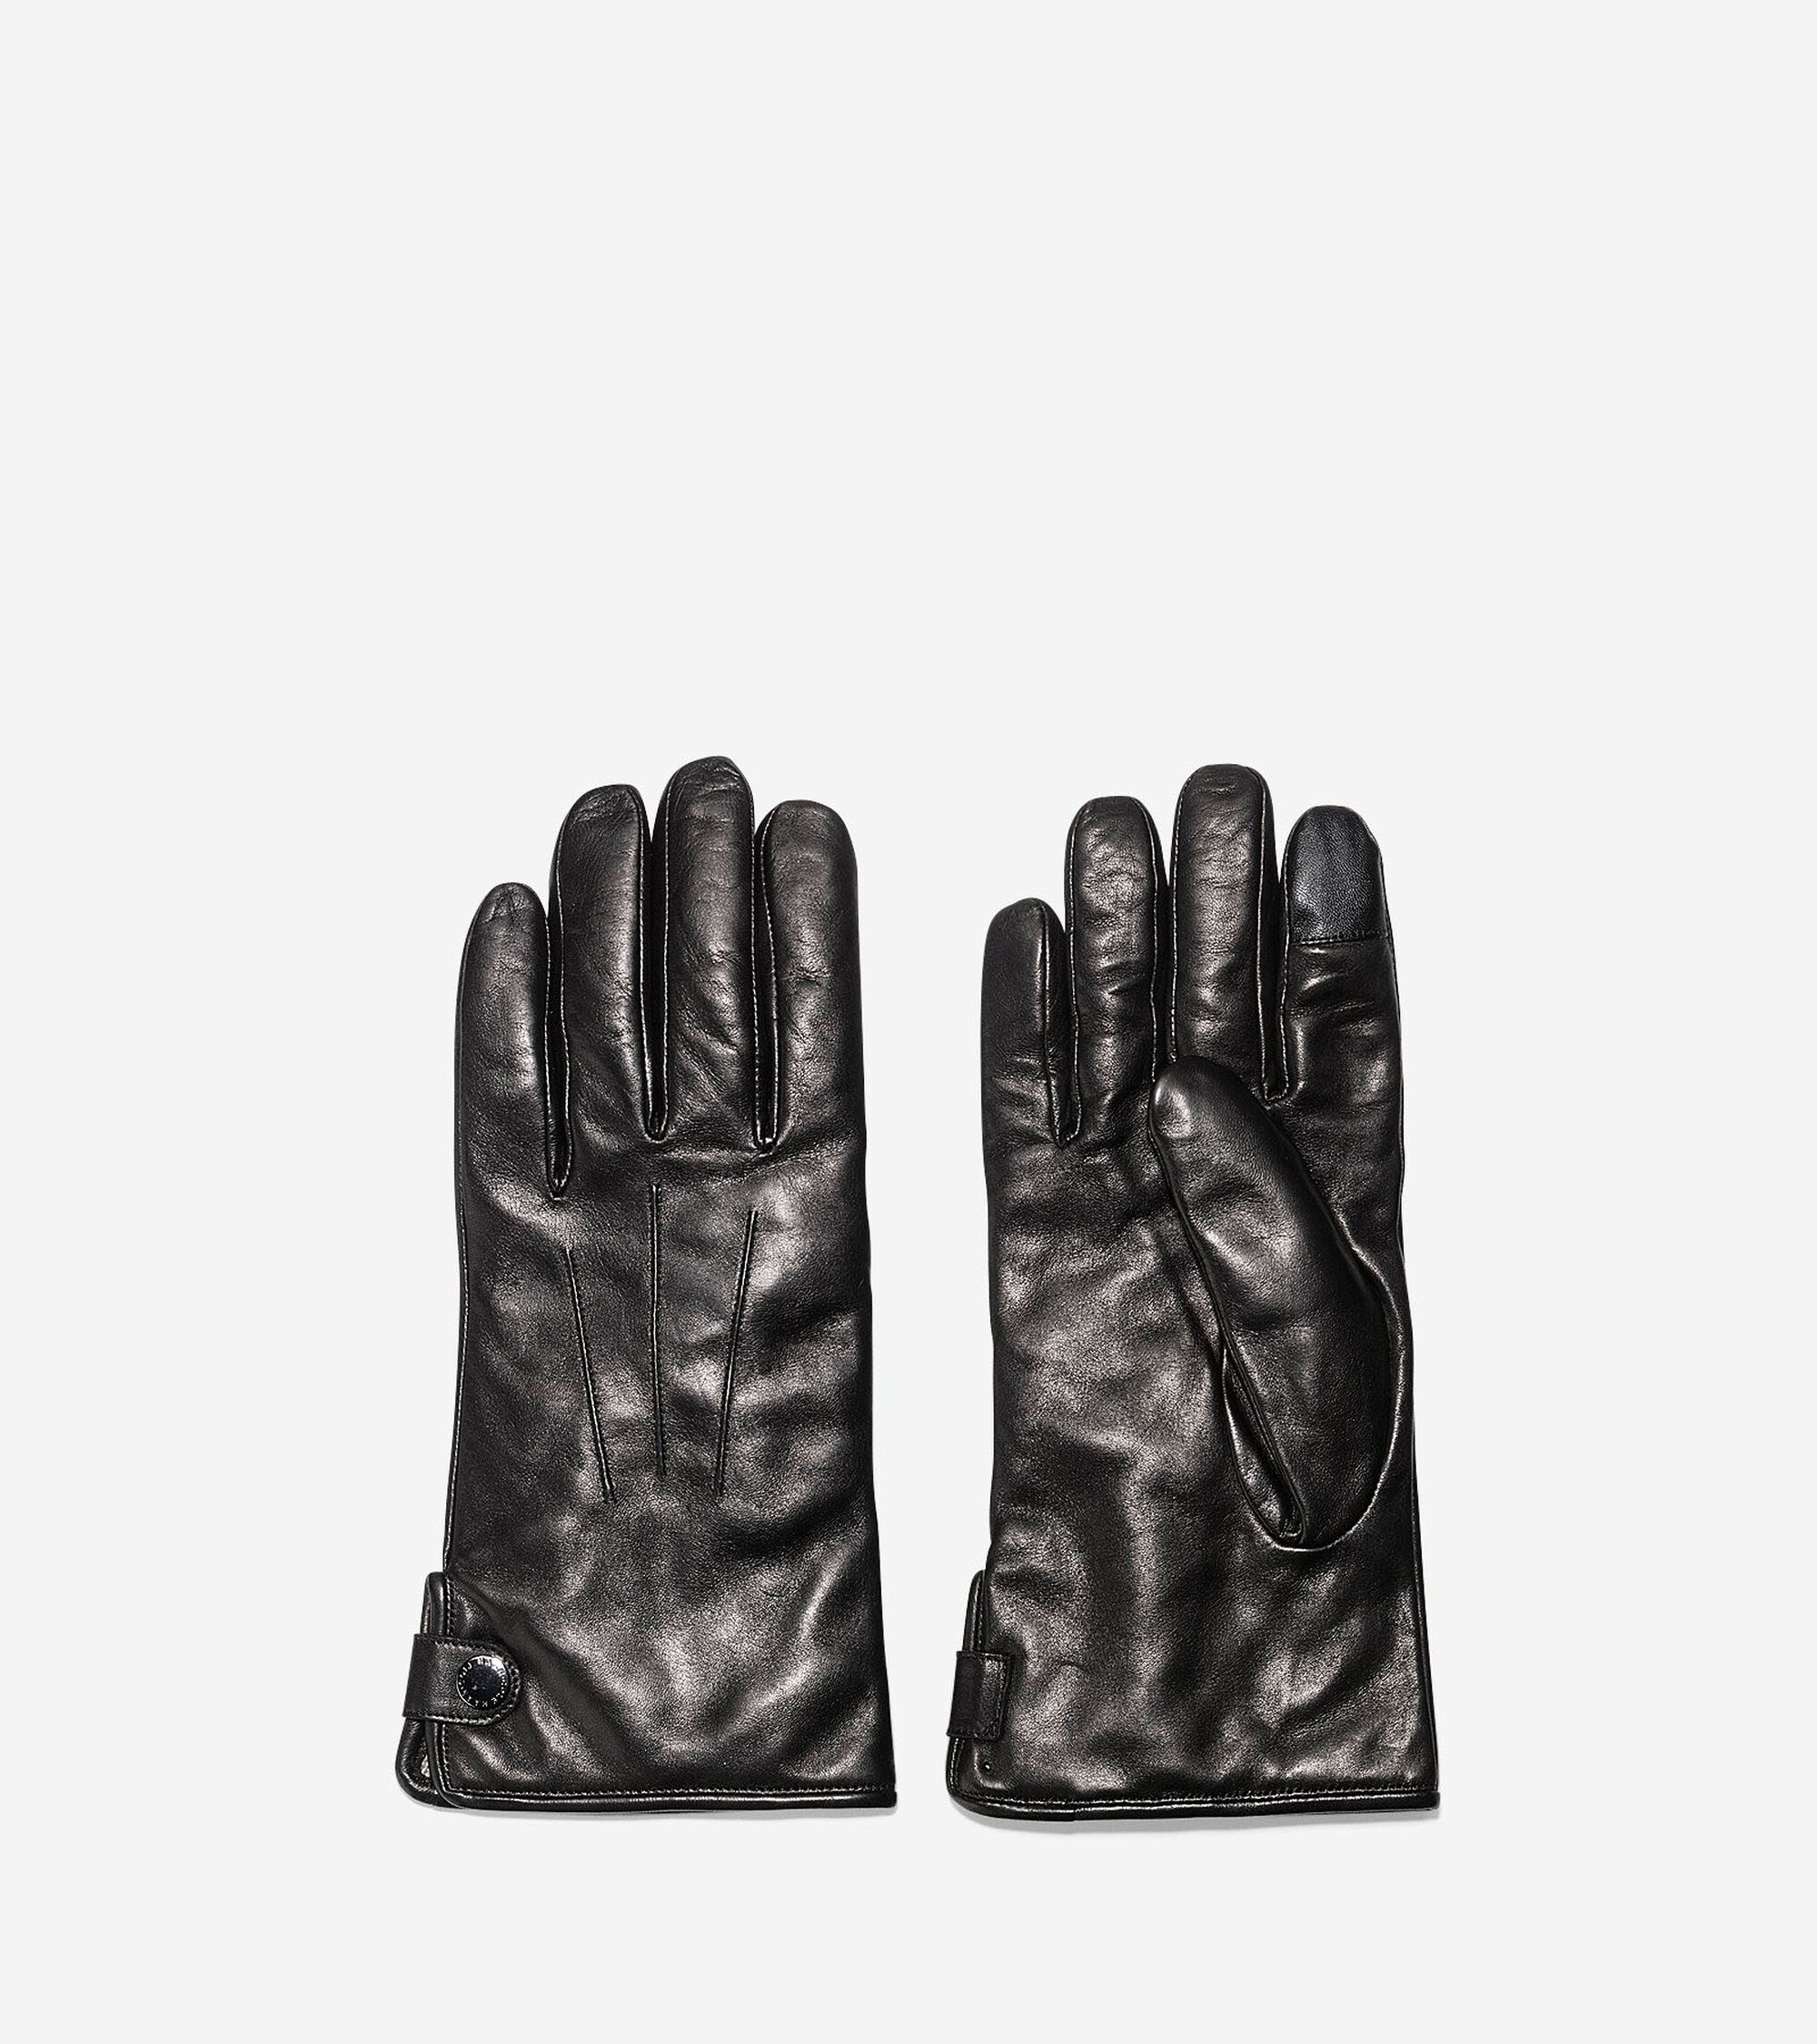 Cole haan black leather gloves -  Men S Side Snap Gloves With Center Points Colehaan